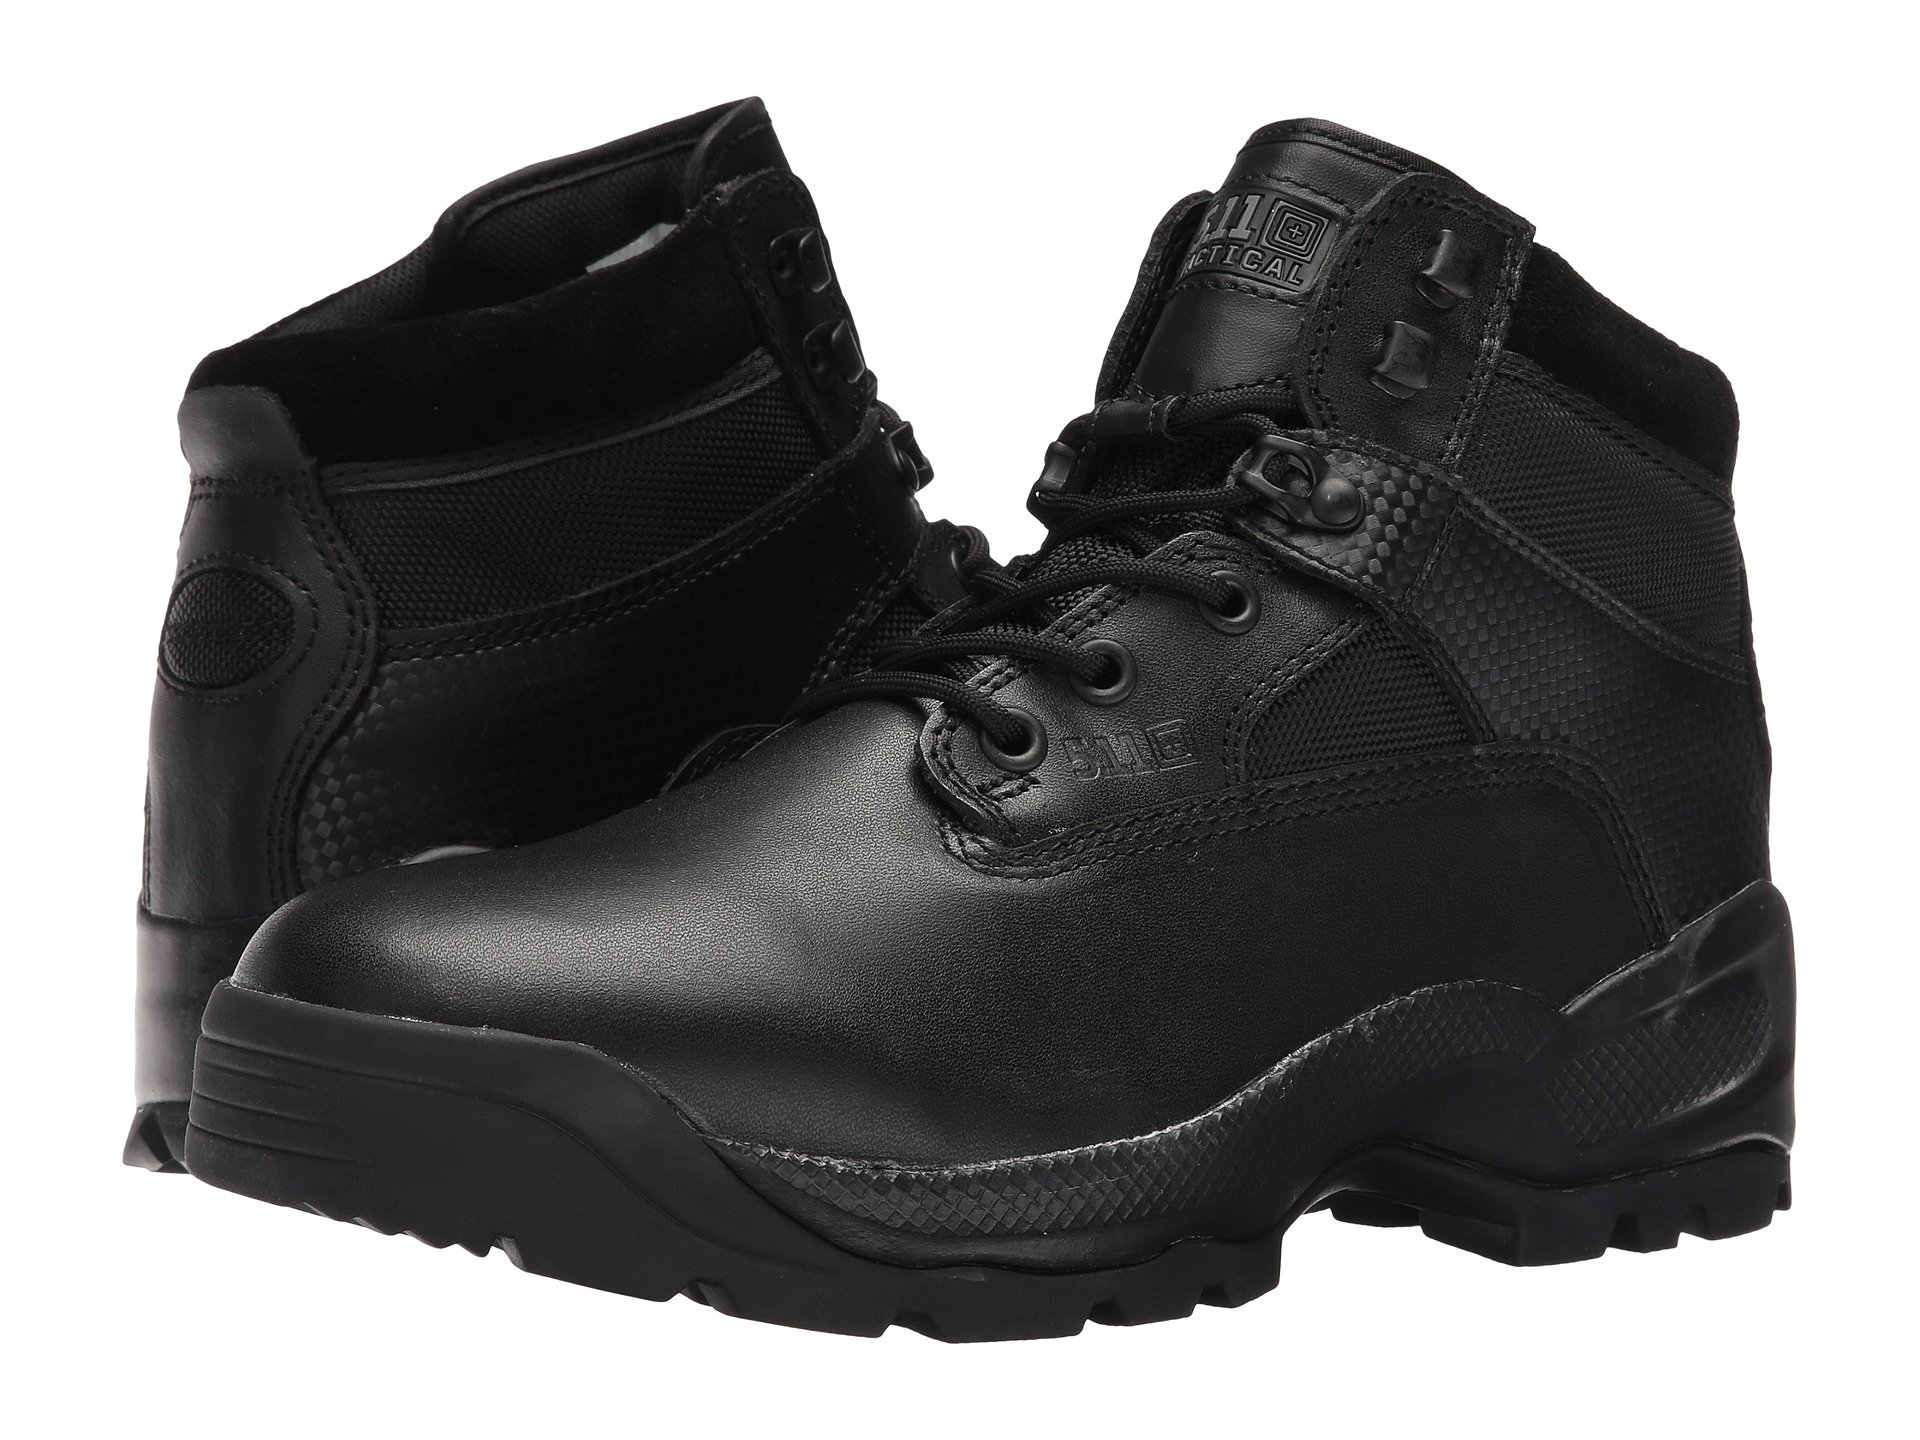 fd616199098 Men s 5.11 Tactical Work and Safety Boots + FREE SHIPPING